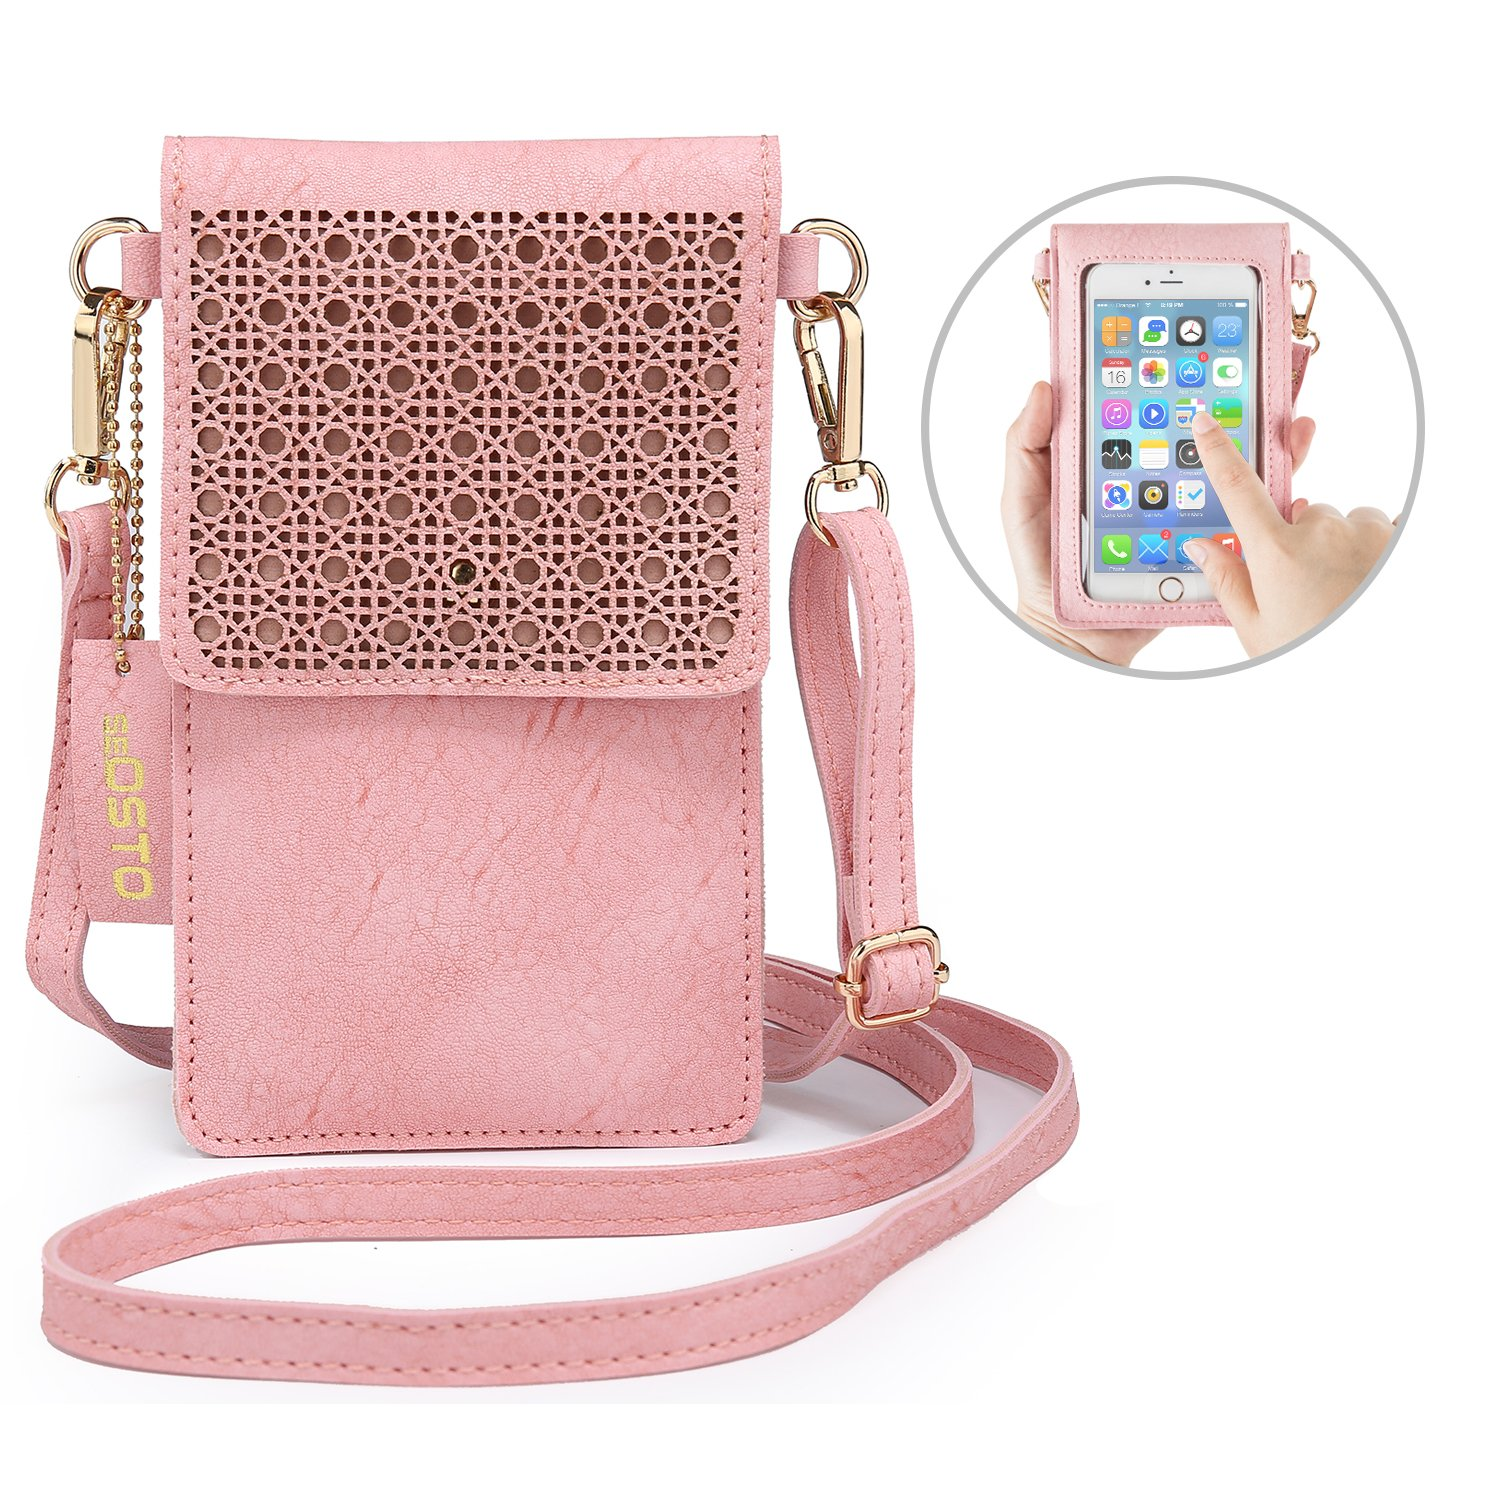 seOSTO Small Crossbody Bag Cell Phone Purse Clear Wallet Bag For Women (Pink)